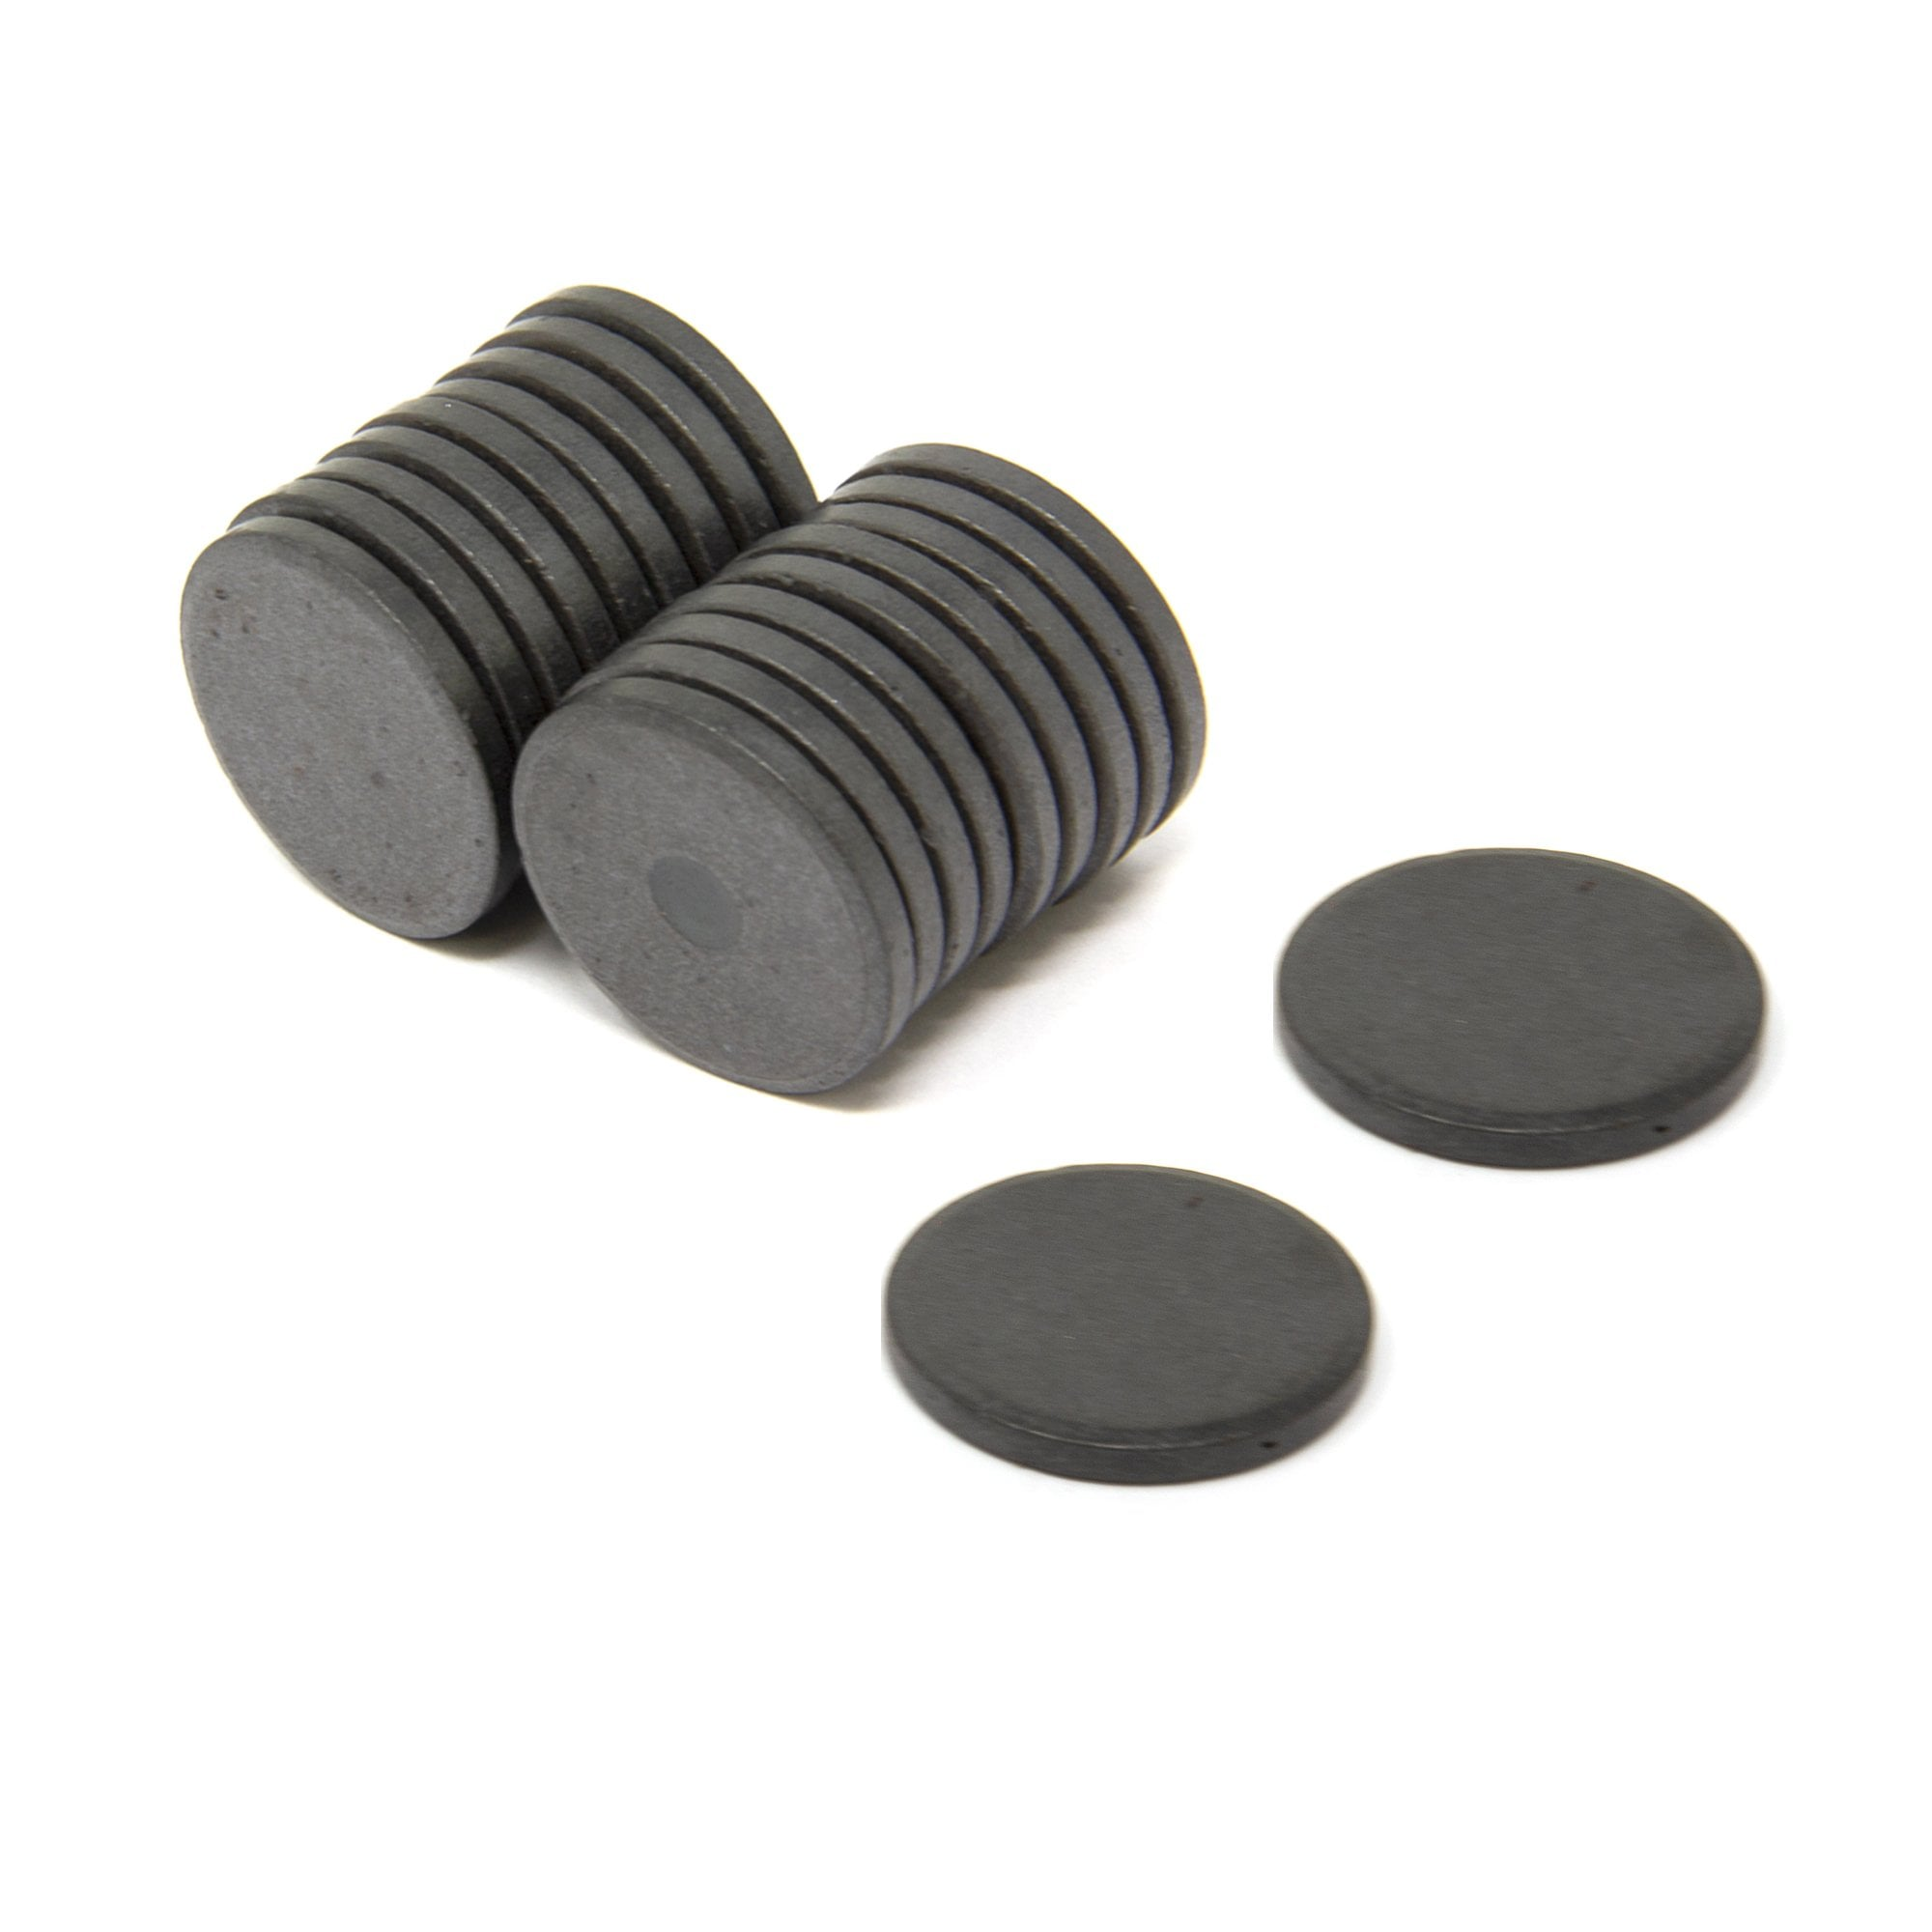 Magnet Expert/® 25mm x 3mm thick Y10 Ferrite Magnet Pack of 25 0.69kg Pull